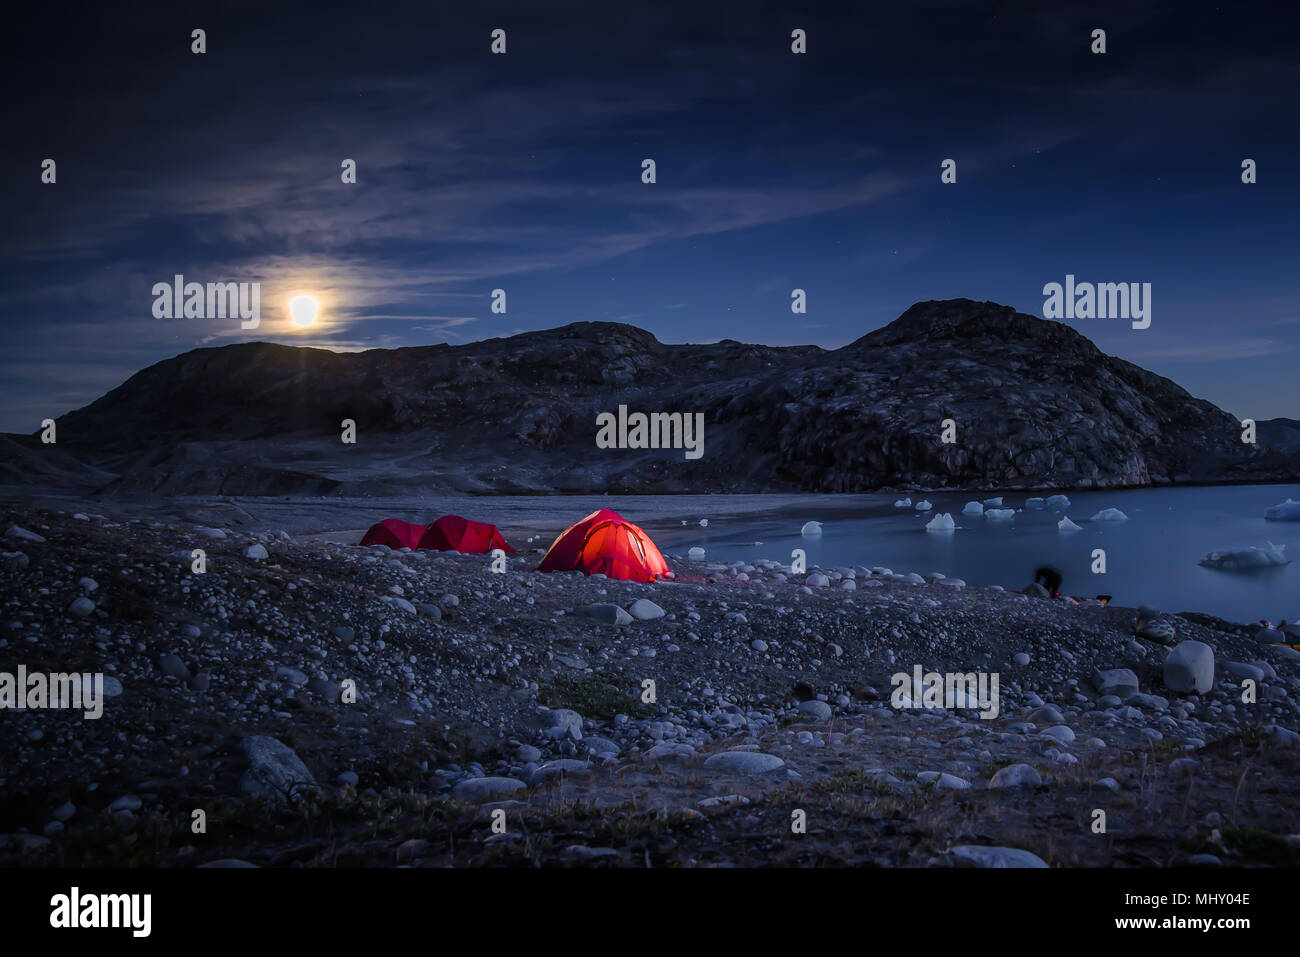 Landscape with tents by fjord and full moon at night, Narsaq, Vestgronland, South Greenland - Stock Image